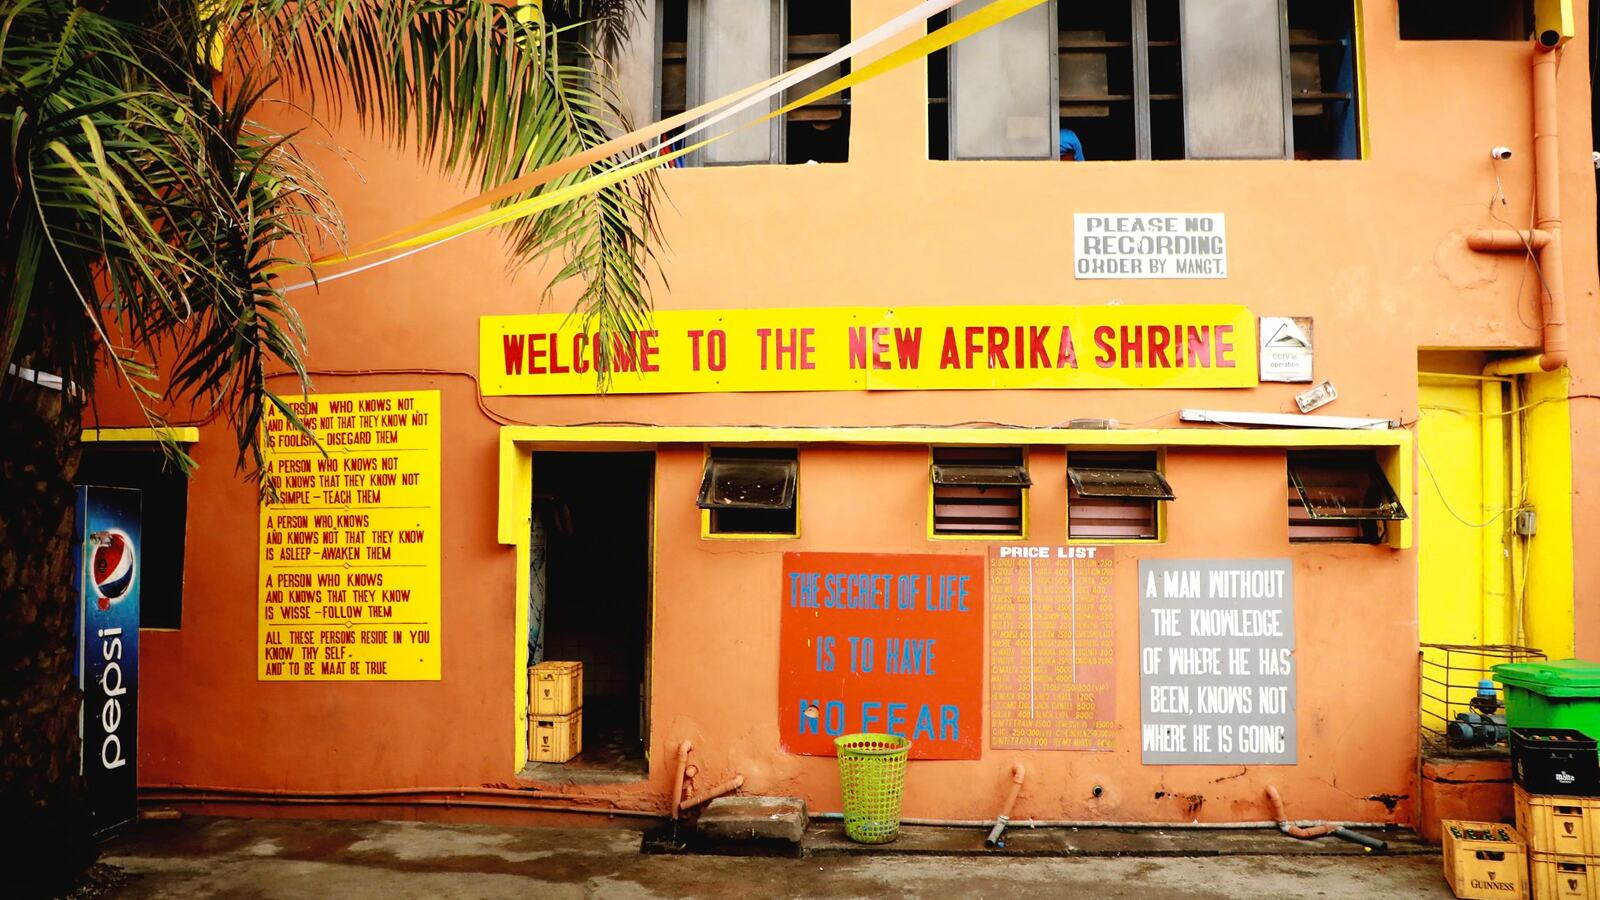 A building with a sign 'Welcome to the New Africa Shrine'